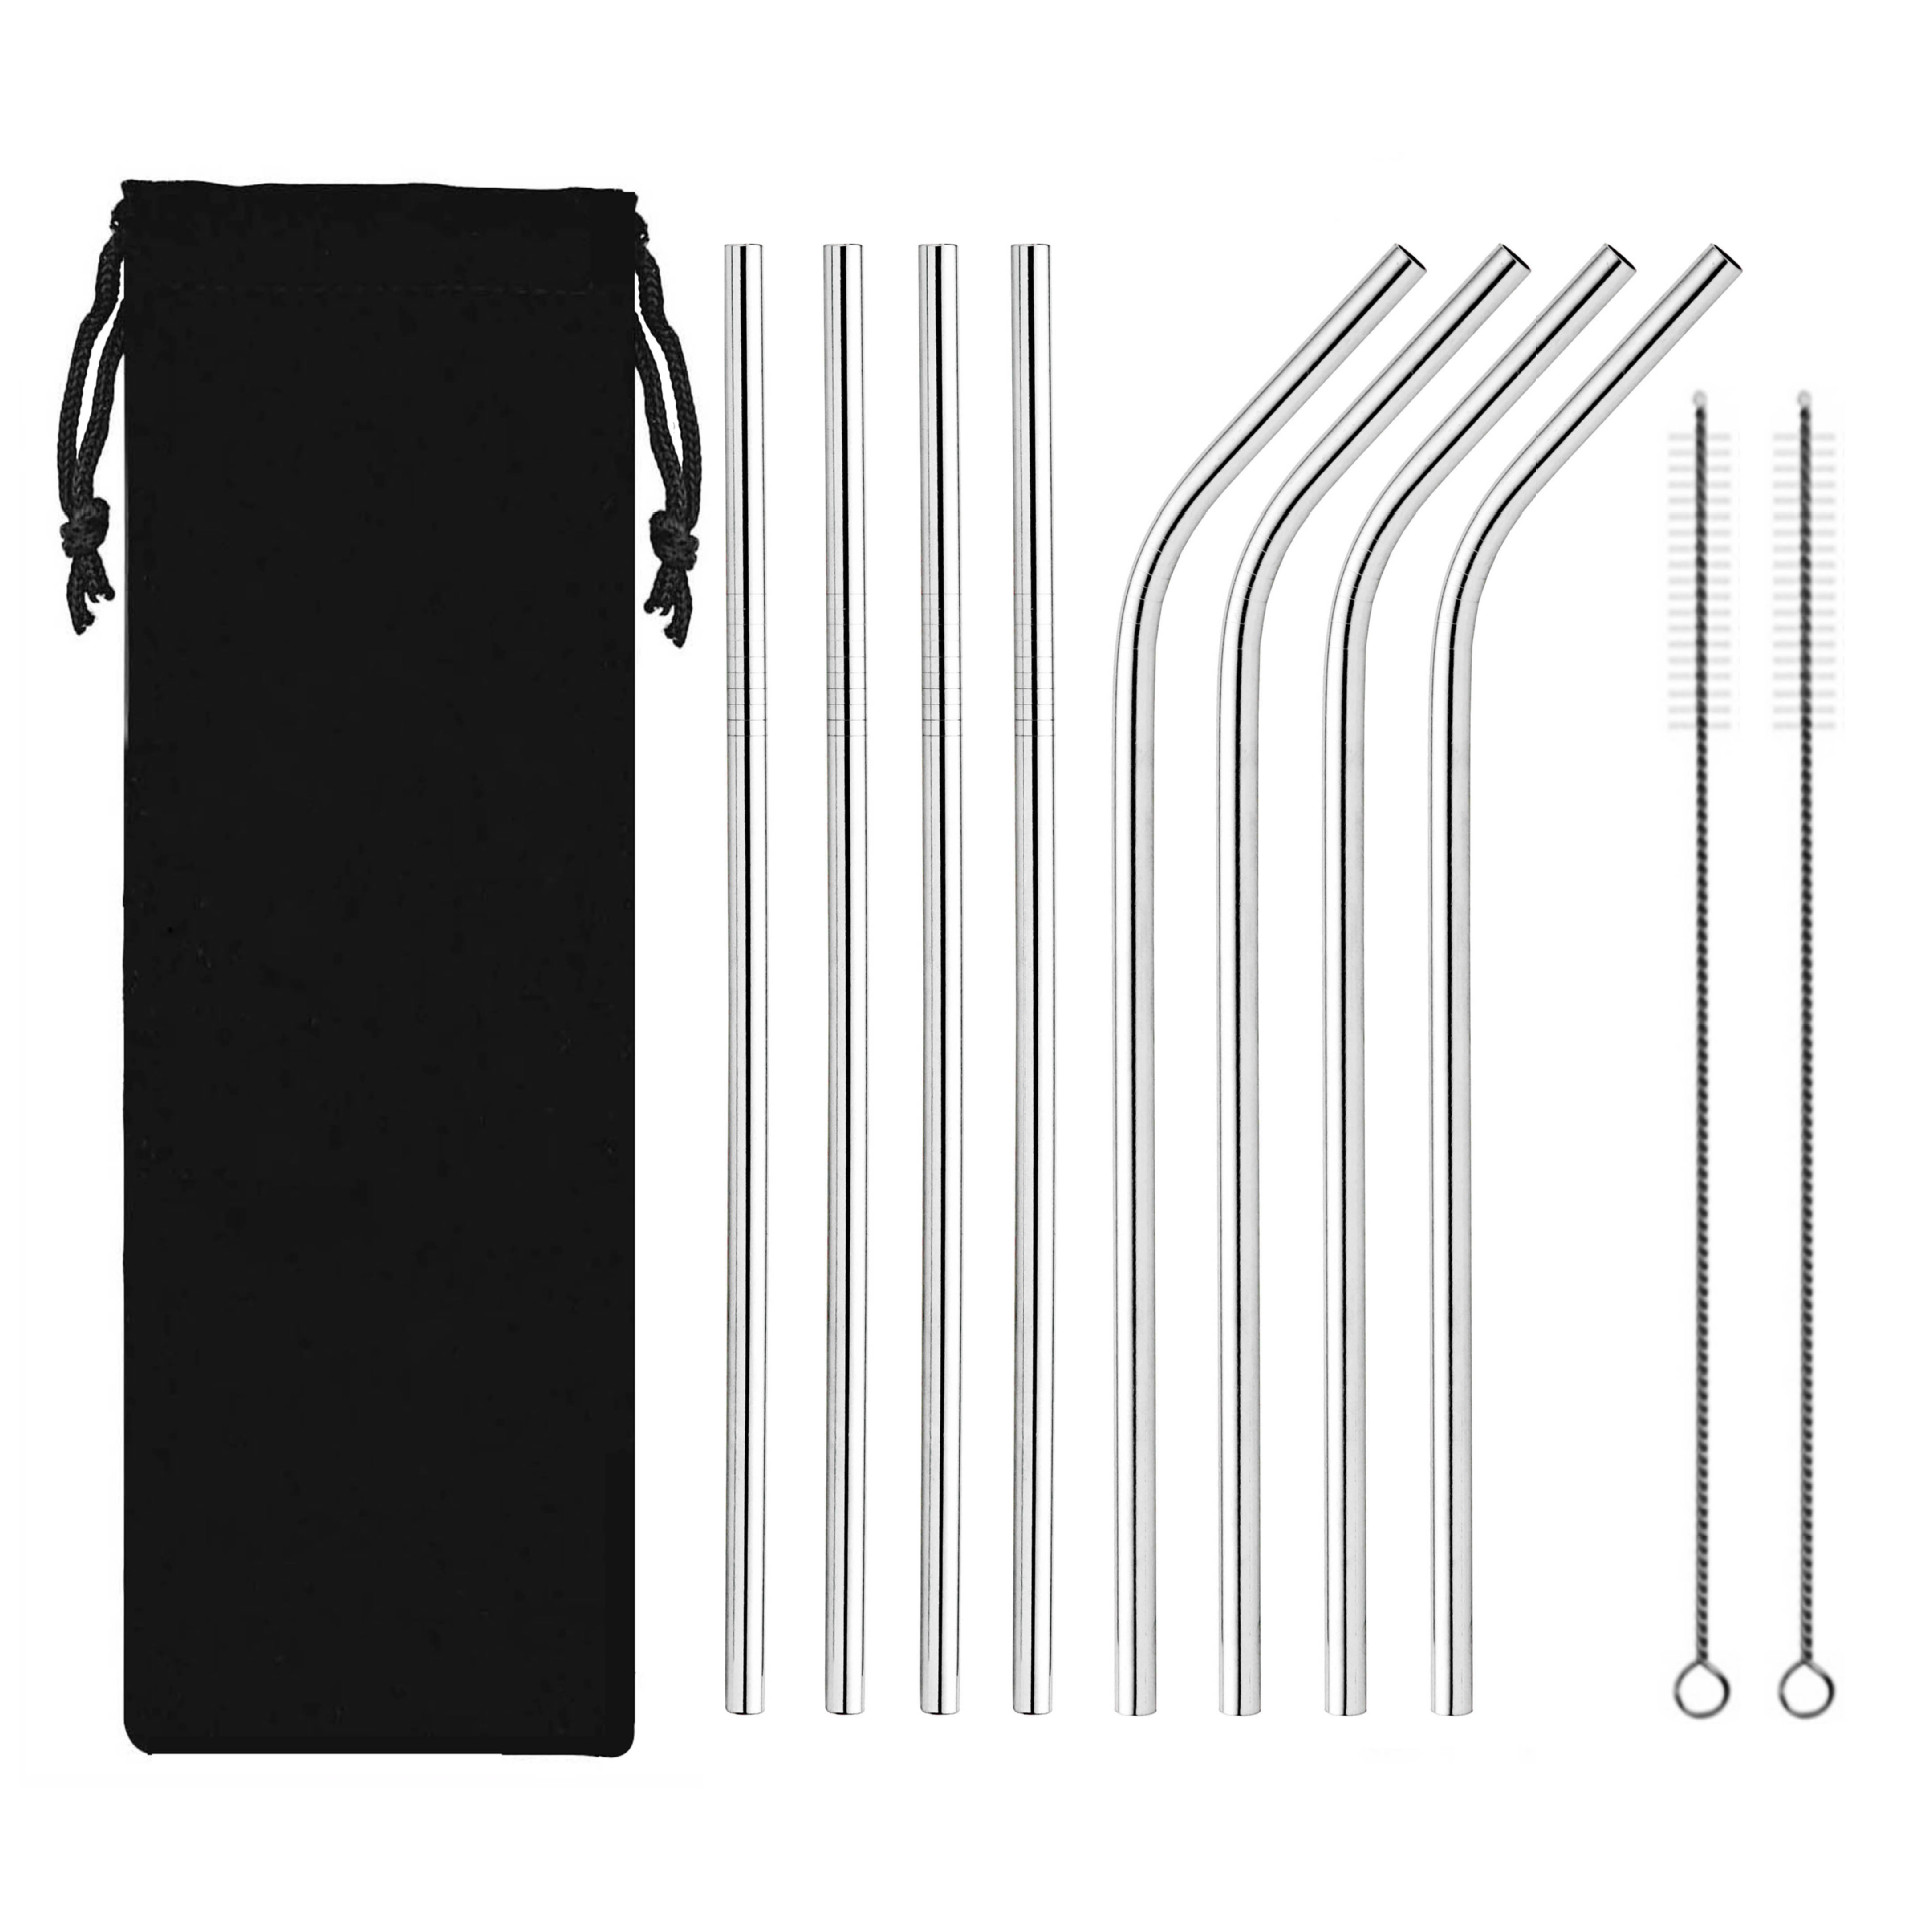 Food-grade stainless steel straw and brush set for coffee